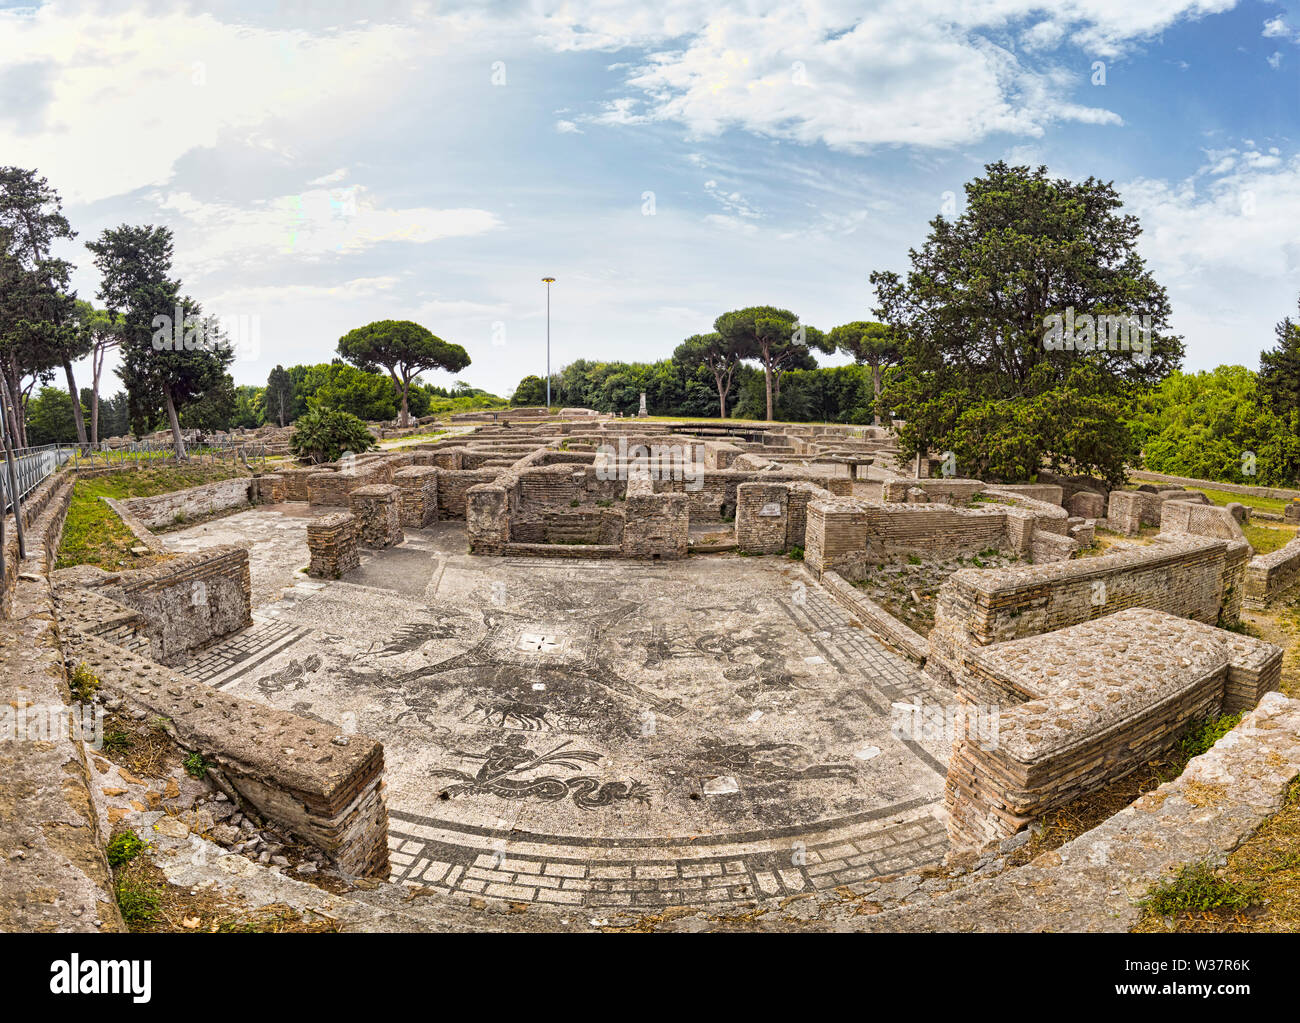 Awesome panoramic view in the Roman empire excavation ruins at Ostia Antica with the beautiful mosaic of  Cisiarii thermal spa and it's architecture - Stock Photo